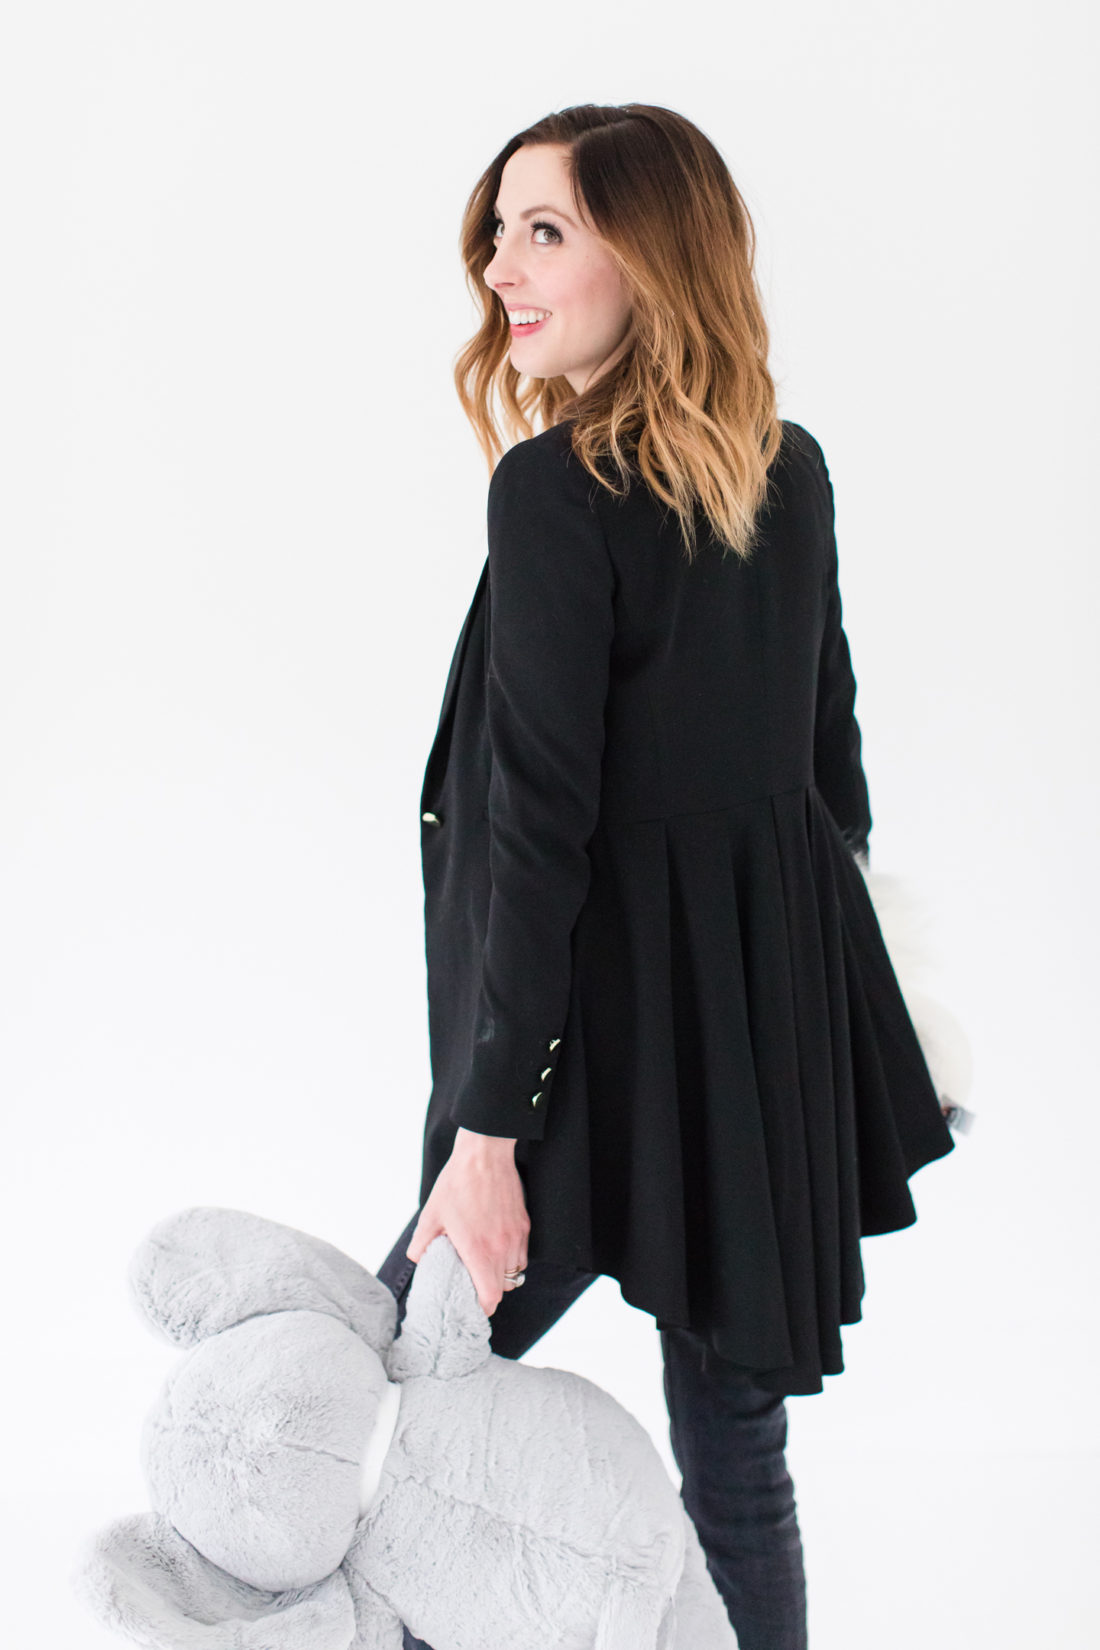 Eva Amurri Martino shows off the back of her black Alice and Olivia blazer